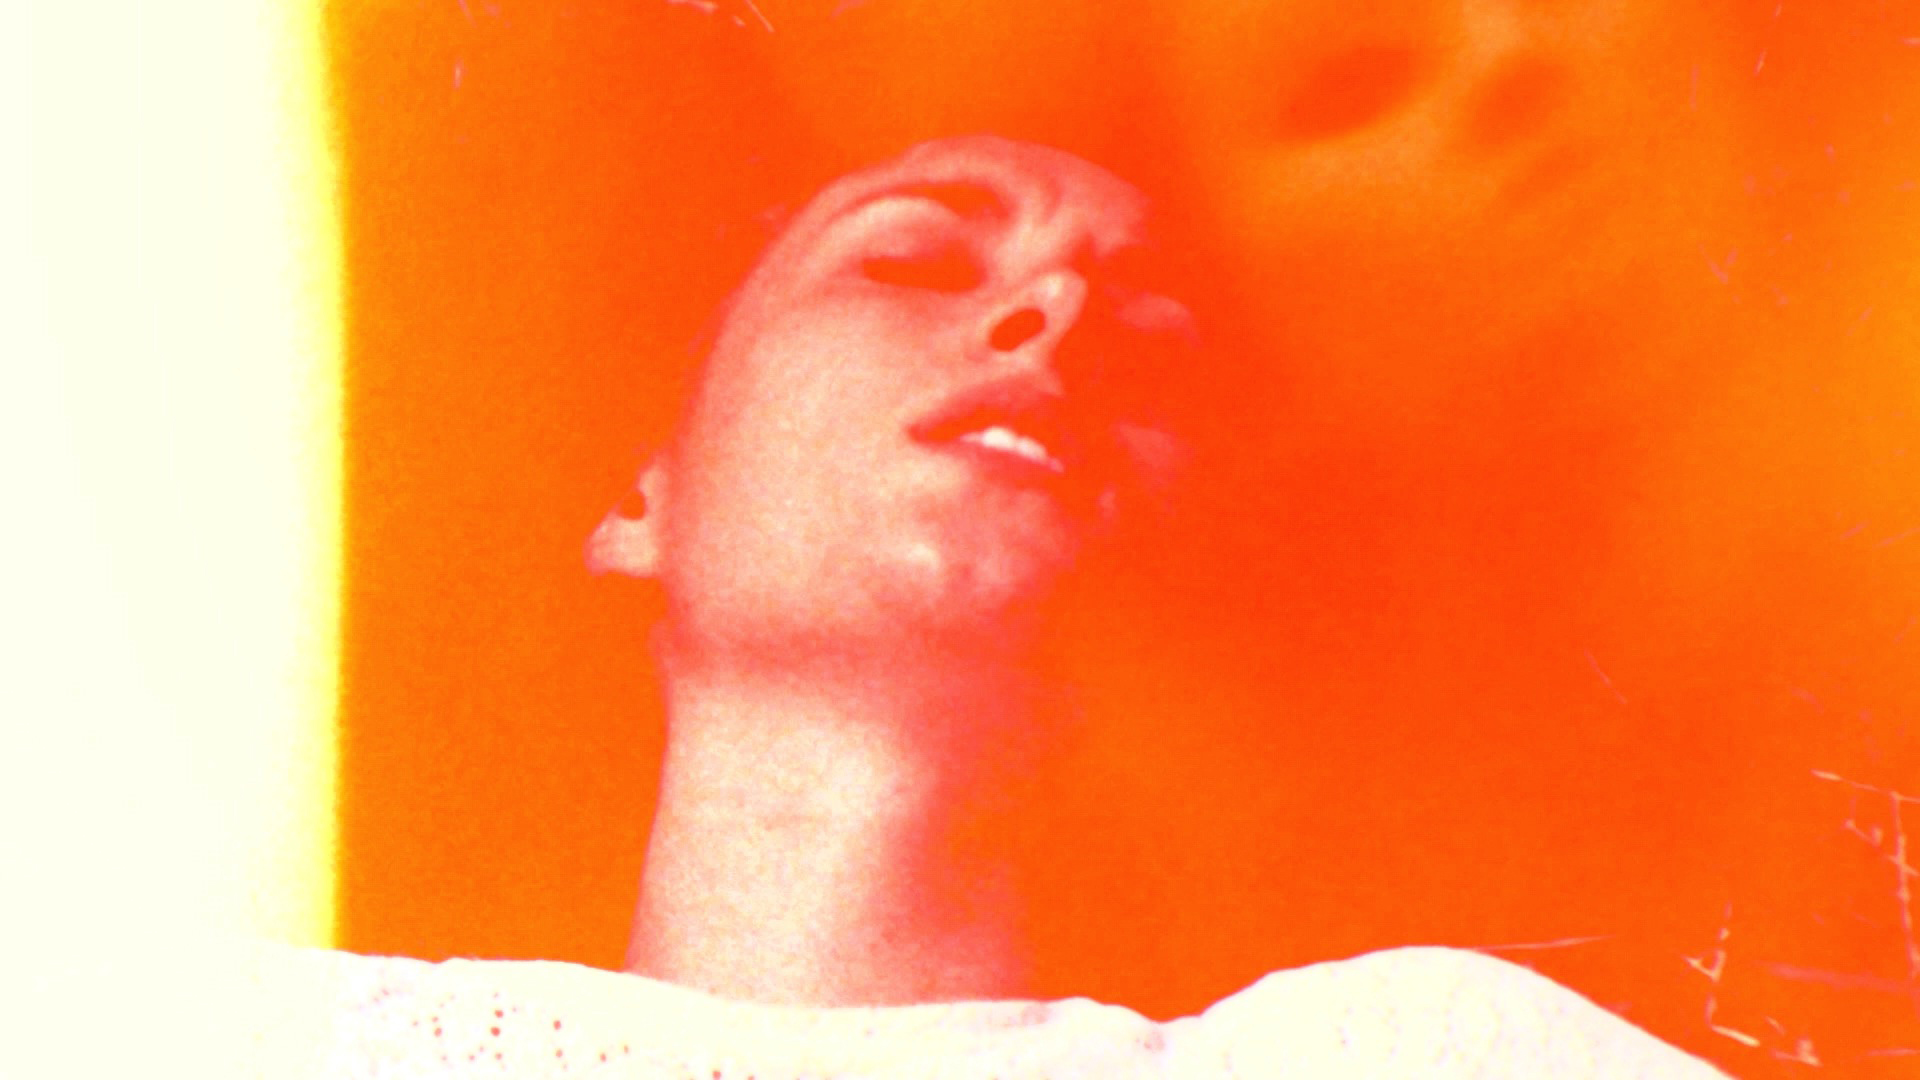 16mm film still from Geena Matuson's (@geenamatuson) 'My Big Bad Wolf' (2013).